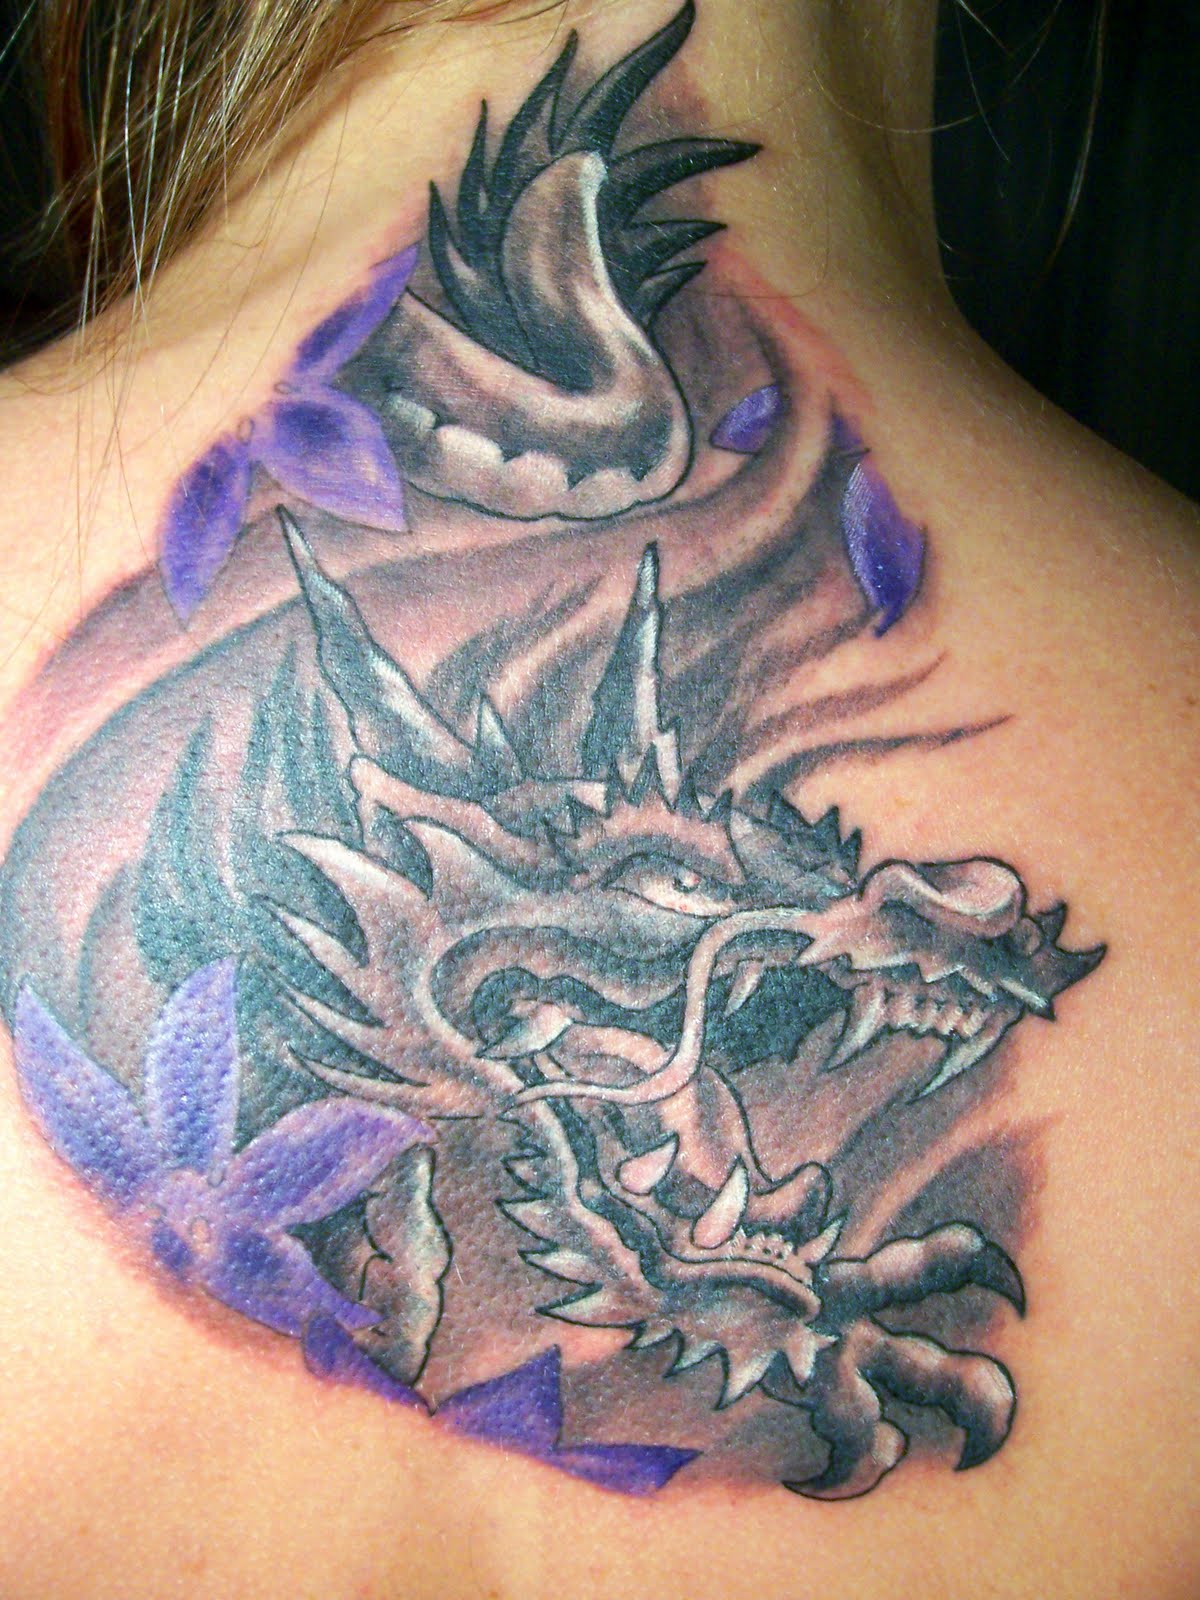 anese dragon tattoo design2